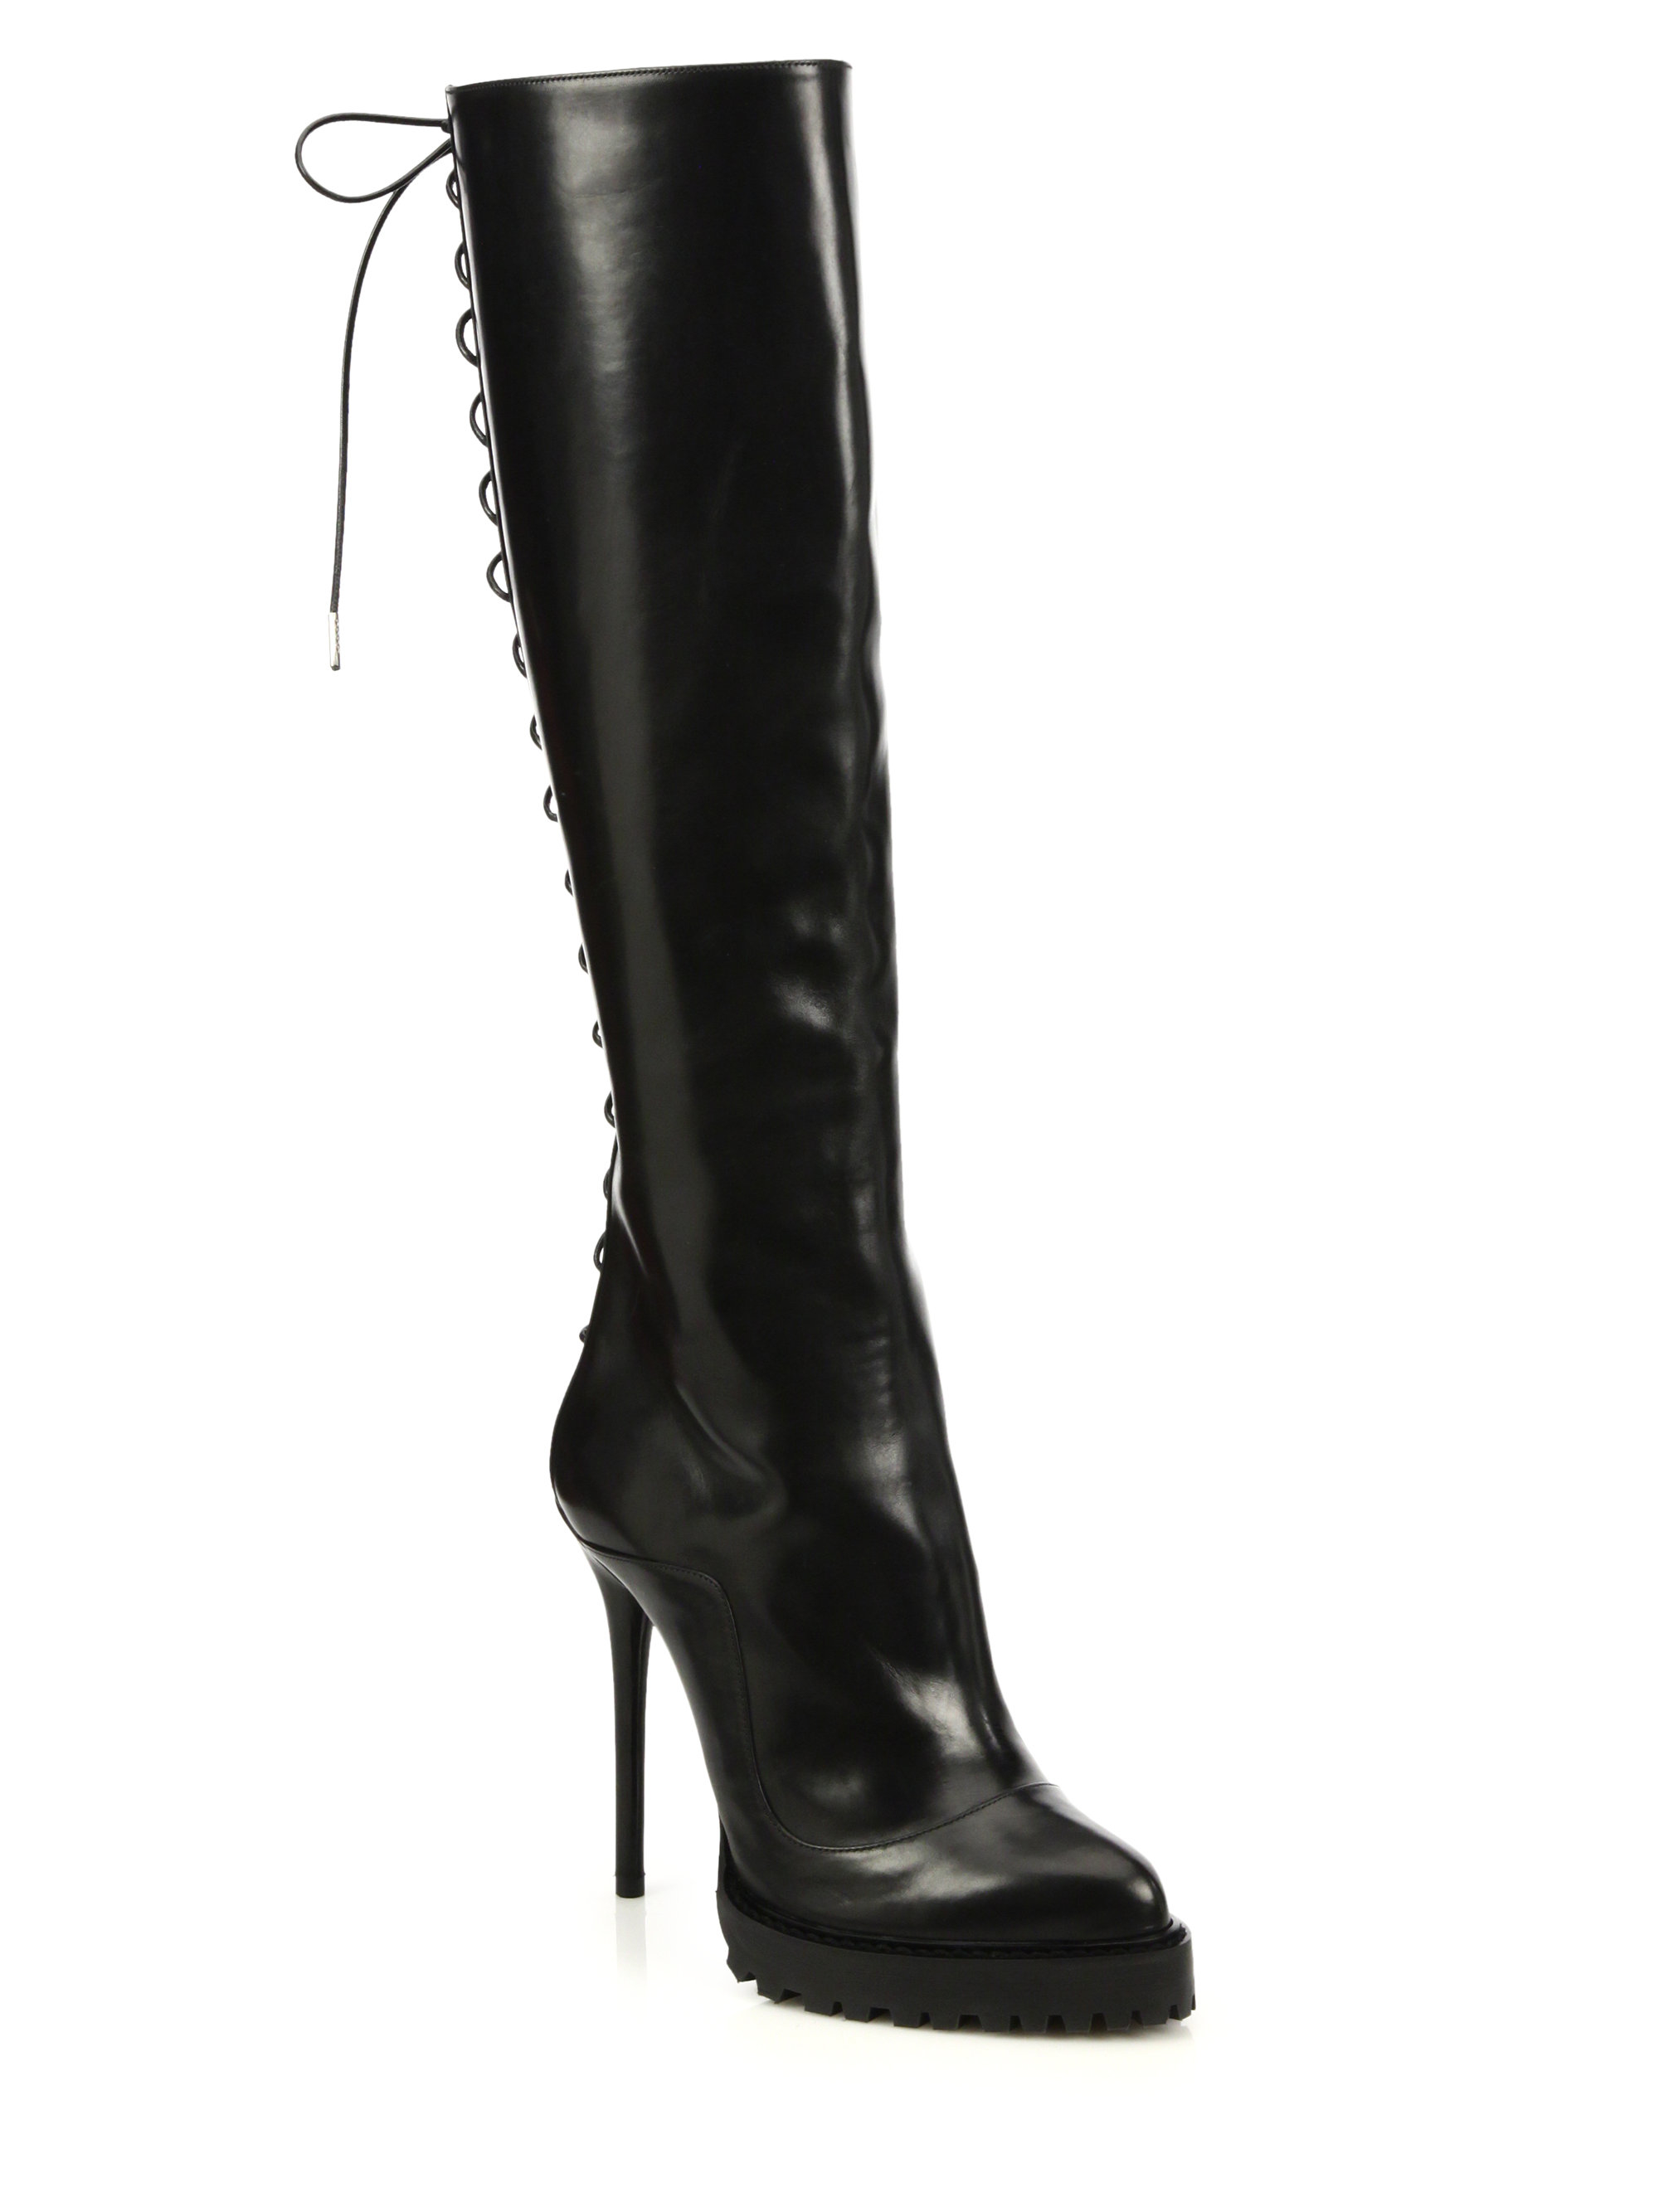 Knee-high leather boots - results from brands Journee collection, Brinley, Miz Mooz, products like Women's Journee Collection Womens Extra Wide Calf Knee-high Riding Boots Orange Medium Leather, Women's Pleaser Pink Label Dream Knee-High Boot - Black Faux Leather Boots, Women's Frye Melissa Button Women's Cowboy Boot F Boot .